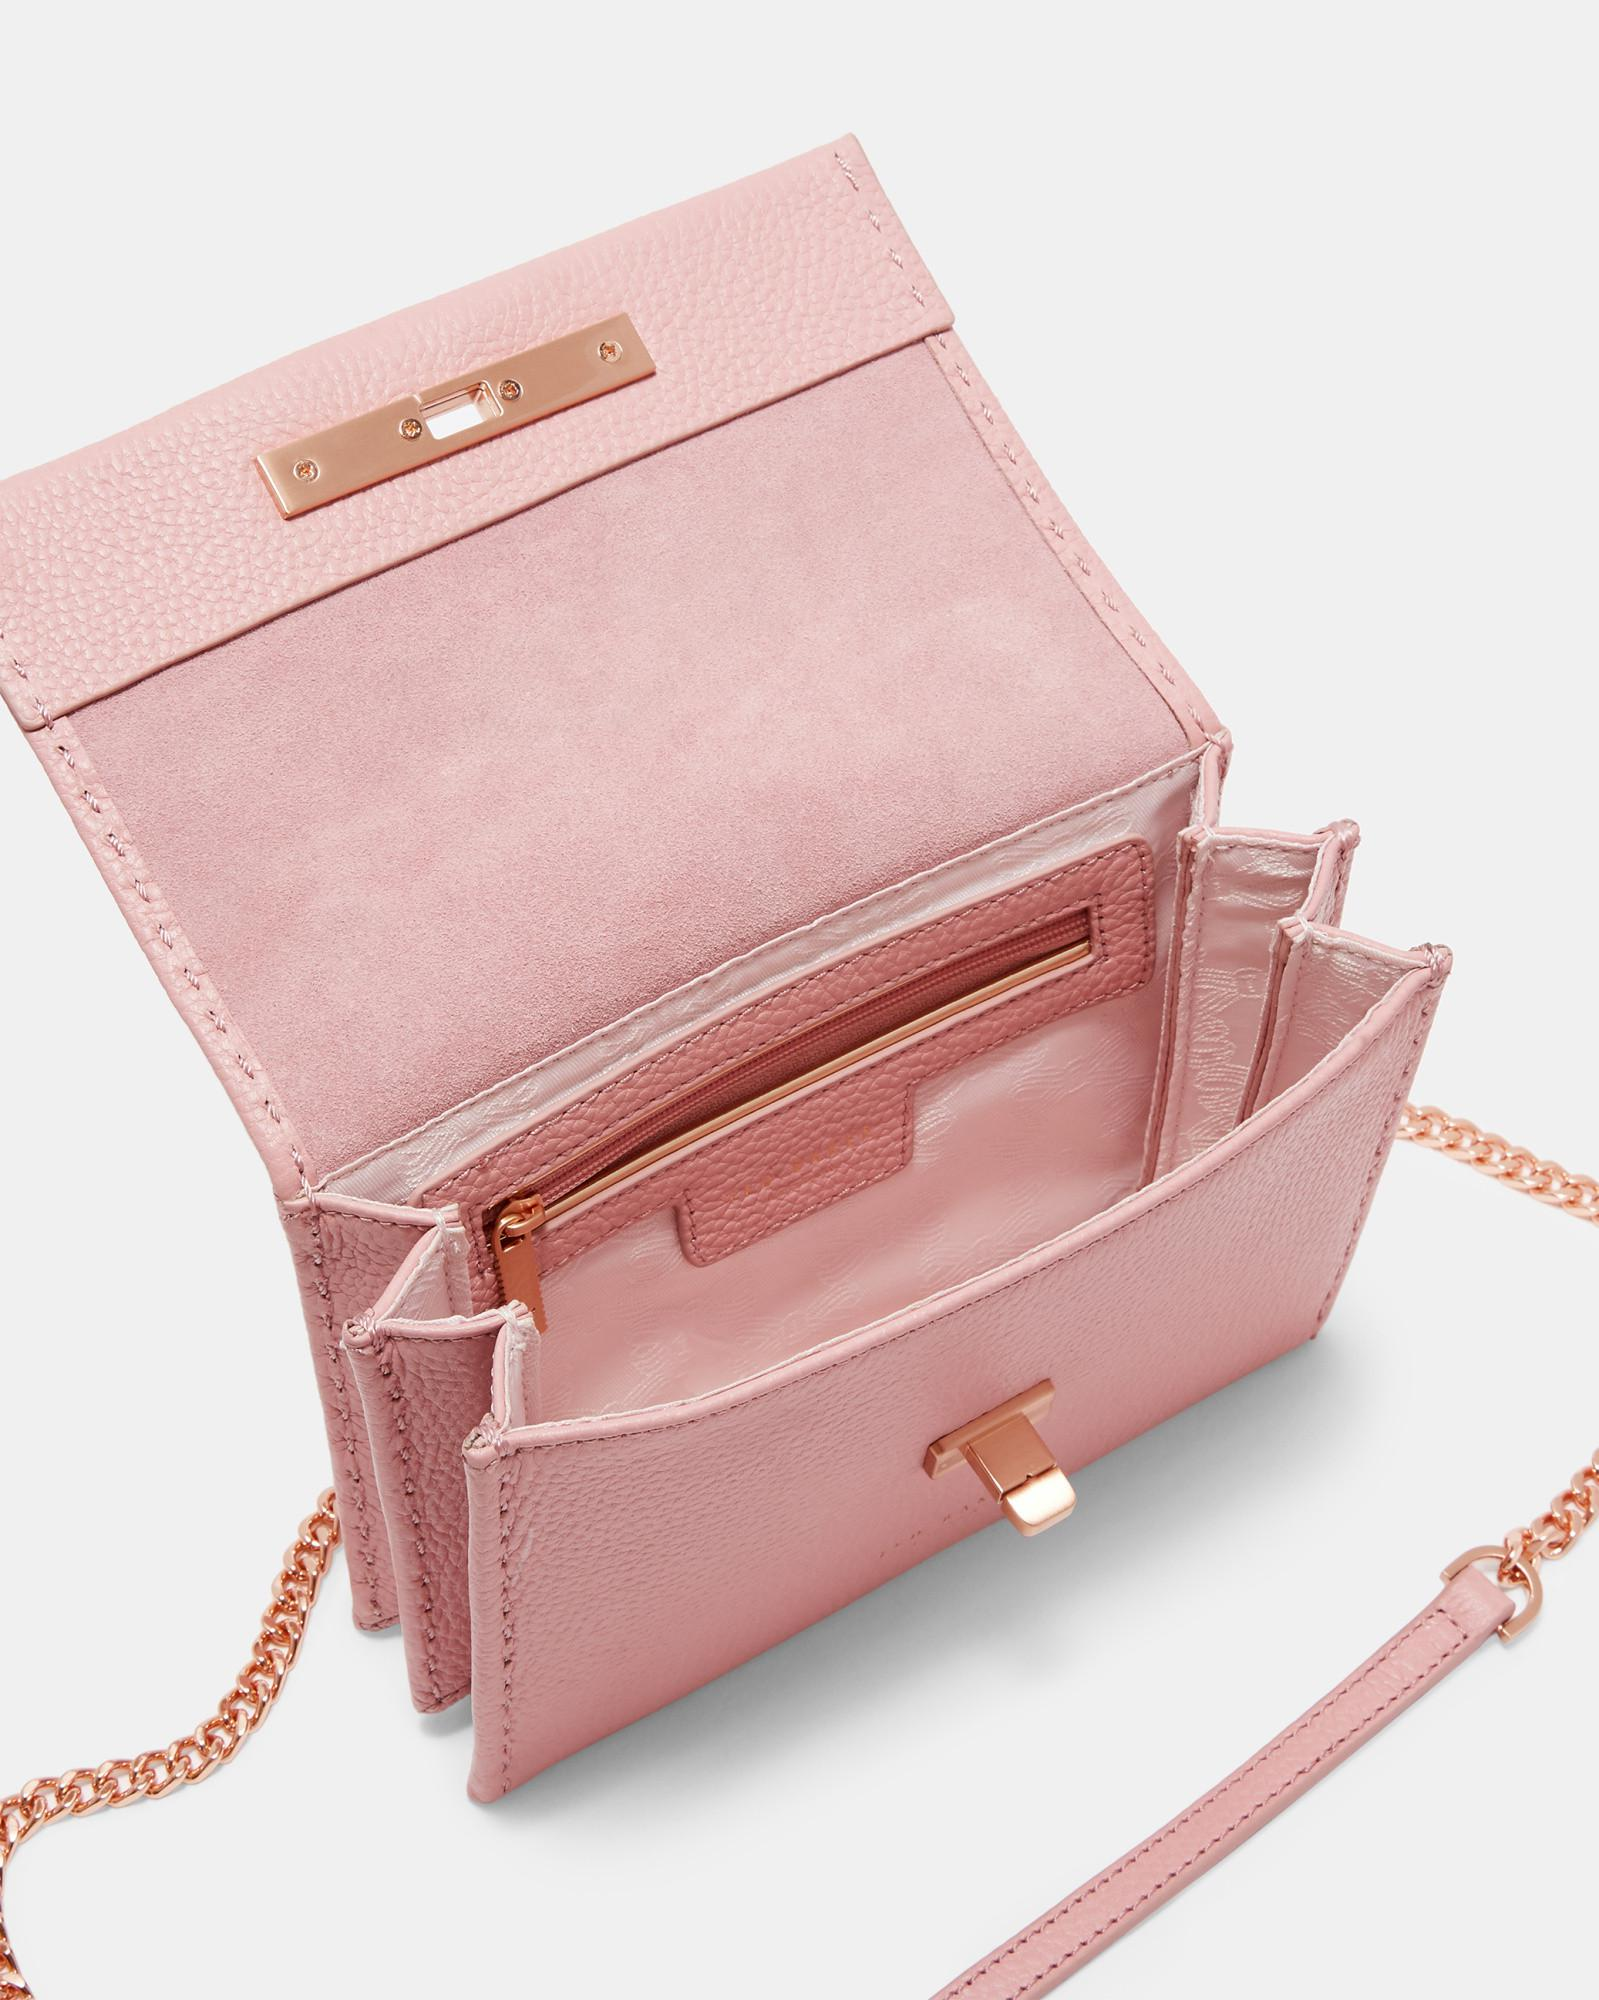 c5483cbba4 Ted Baker Concertina Mini Leather Cross Body Bag in Pink - Lyst